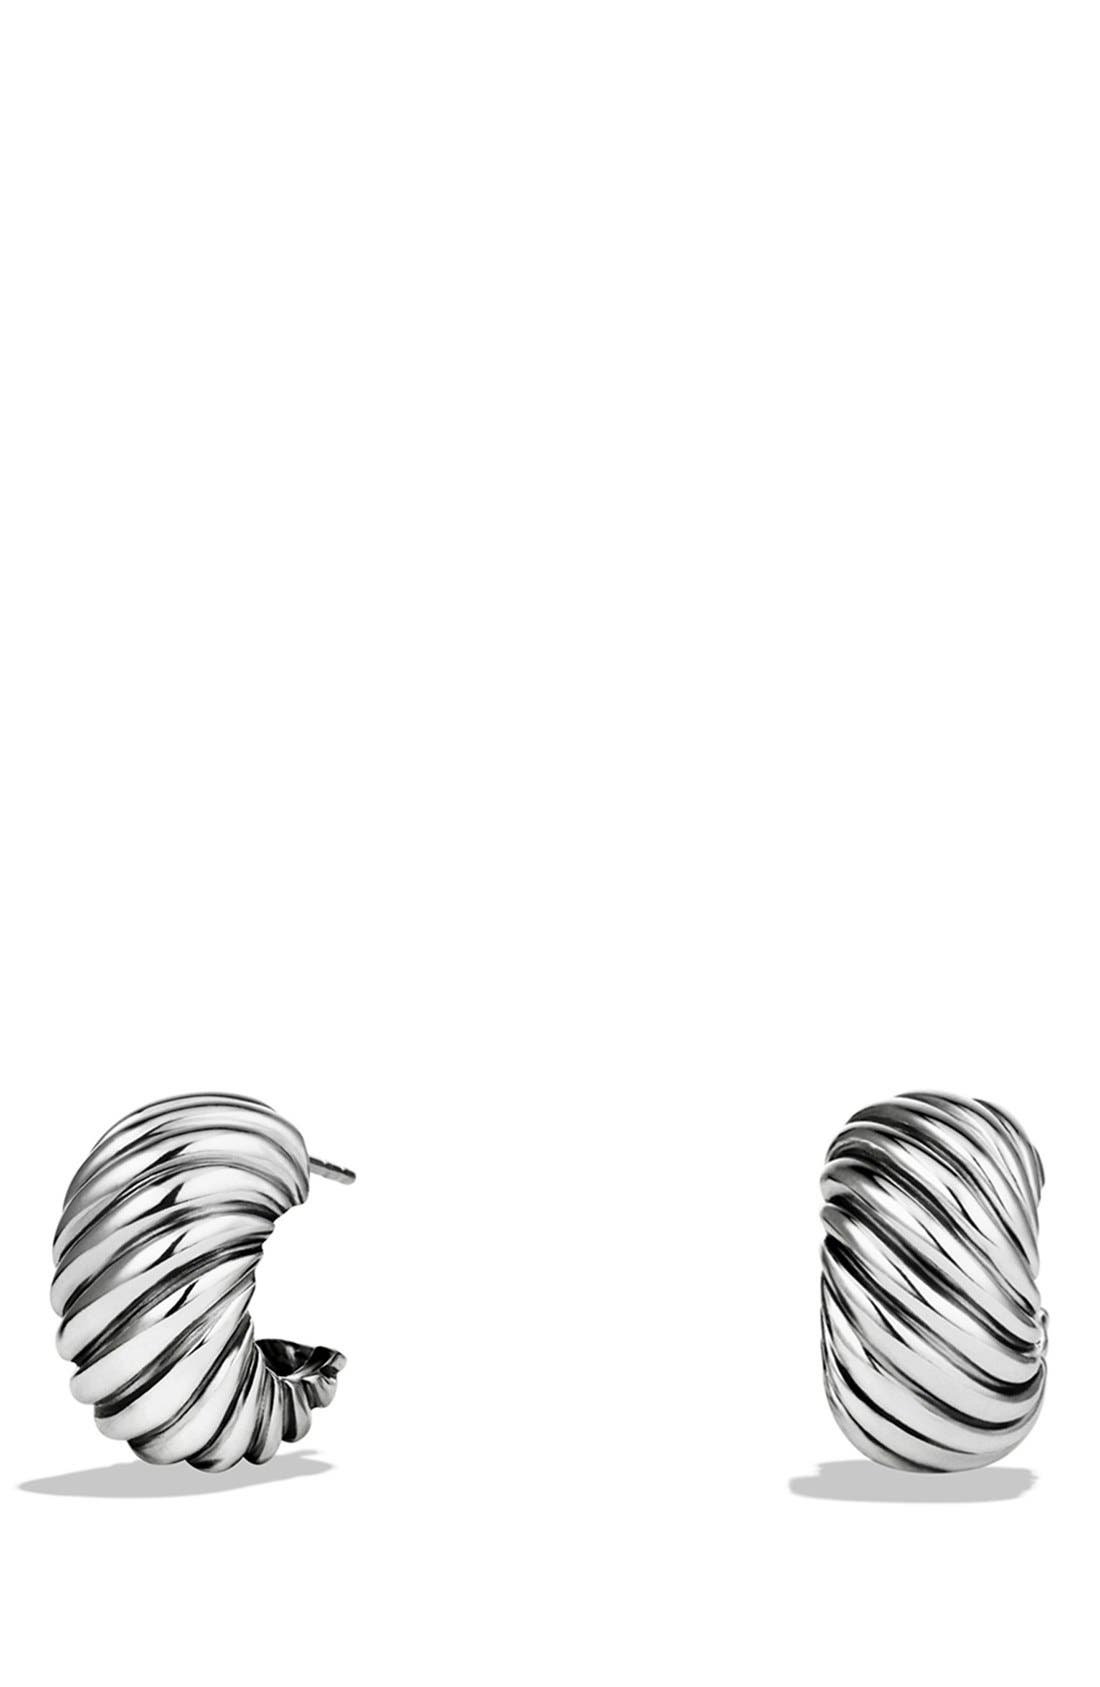 'Cable Classics' Hoop Earrings,                             Main thumbnail 1, color,                             Silver